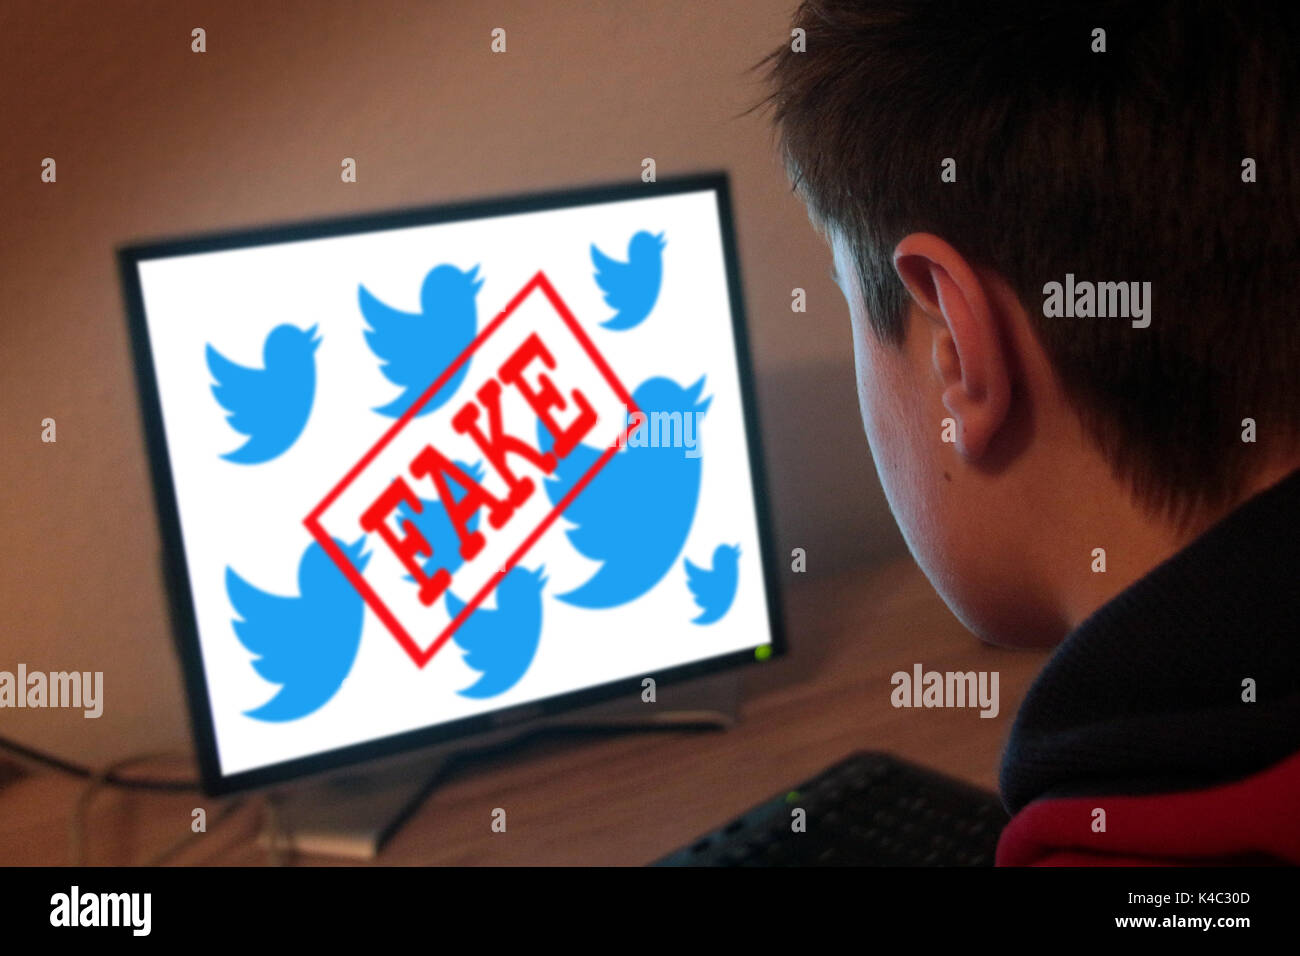 Young Man In Front Of A Computer With Word Fake Over Twitter Signs Stock Photo